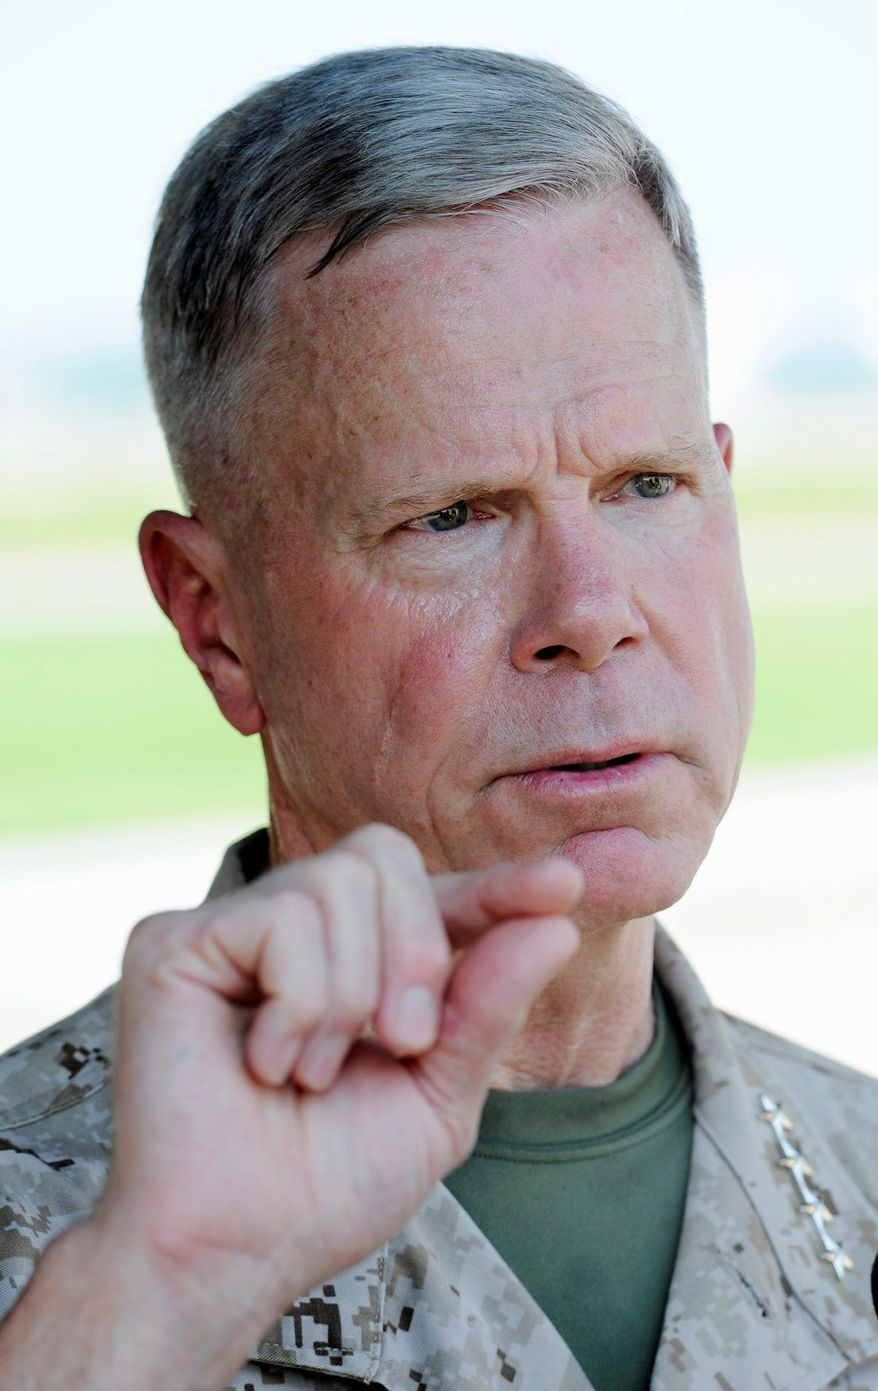 FILE - In this July 29, 2011 file photo, Marine Corps Commandant Gen. James Amos speaks with reporters about the Marine Corps need for the F-35B Joint Strike Fighter, at Patuxent River Naval Air Station, Md. Amos, the U.S. Marines' top general, sprinted up and down the Helmand River Valley in southern Afghanistan on Thursday, Nov. 24, 2011, visiting frontline Marines at nine remote outposts to share Thanksgiving and applaud their gains against the Taliban in a region where al-Qaida hatched the 9/11 plot a decade ago. (AP Photo/Cliff Owen, File)